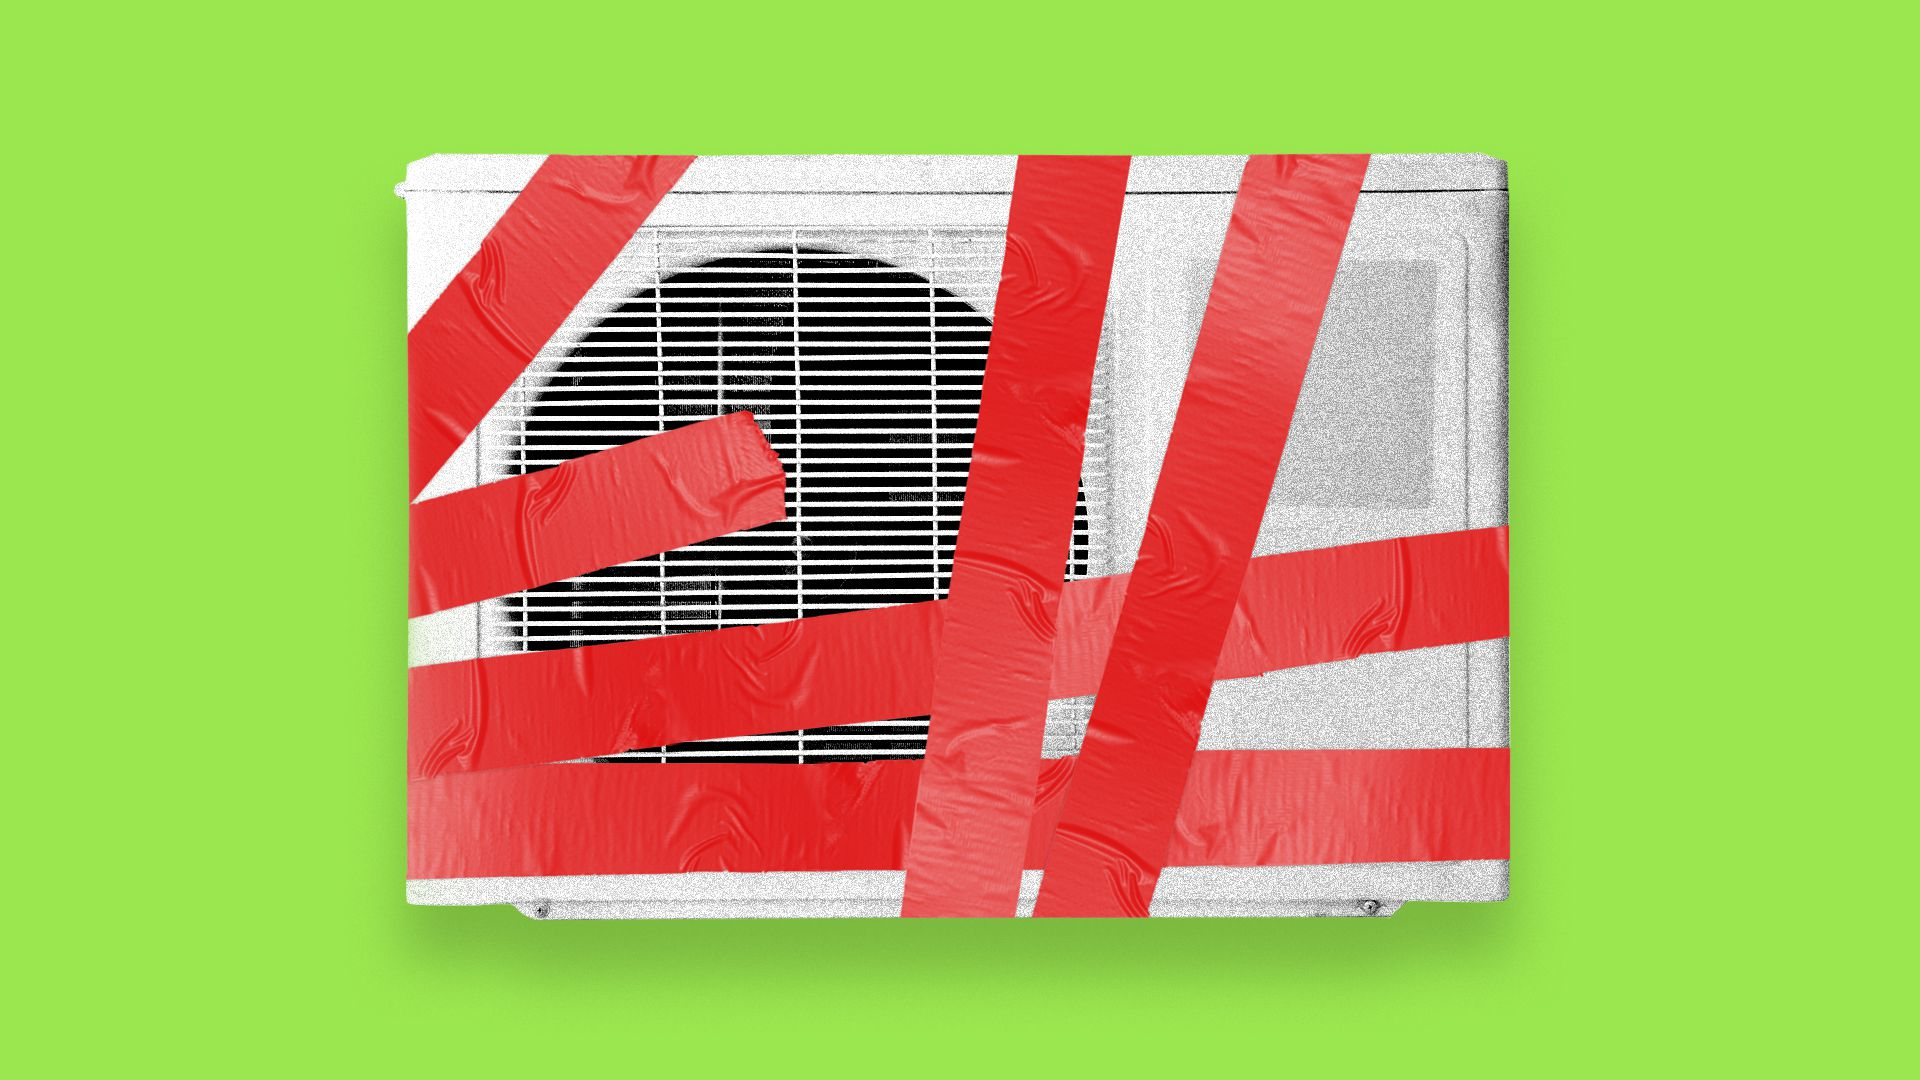 Air conditioner wrapped in red tape